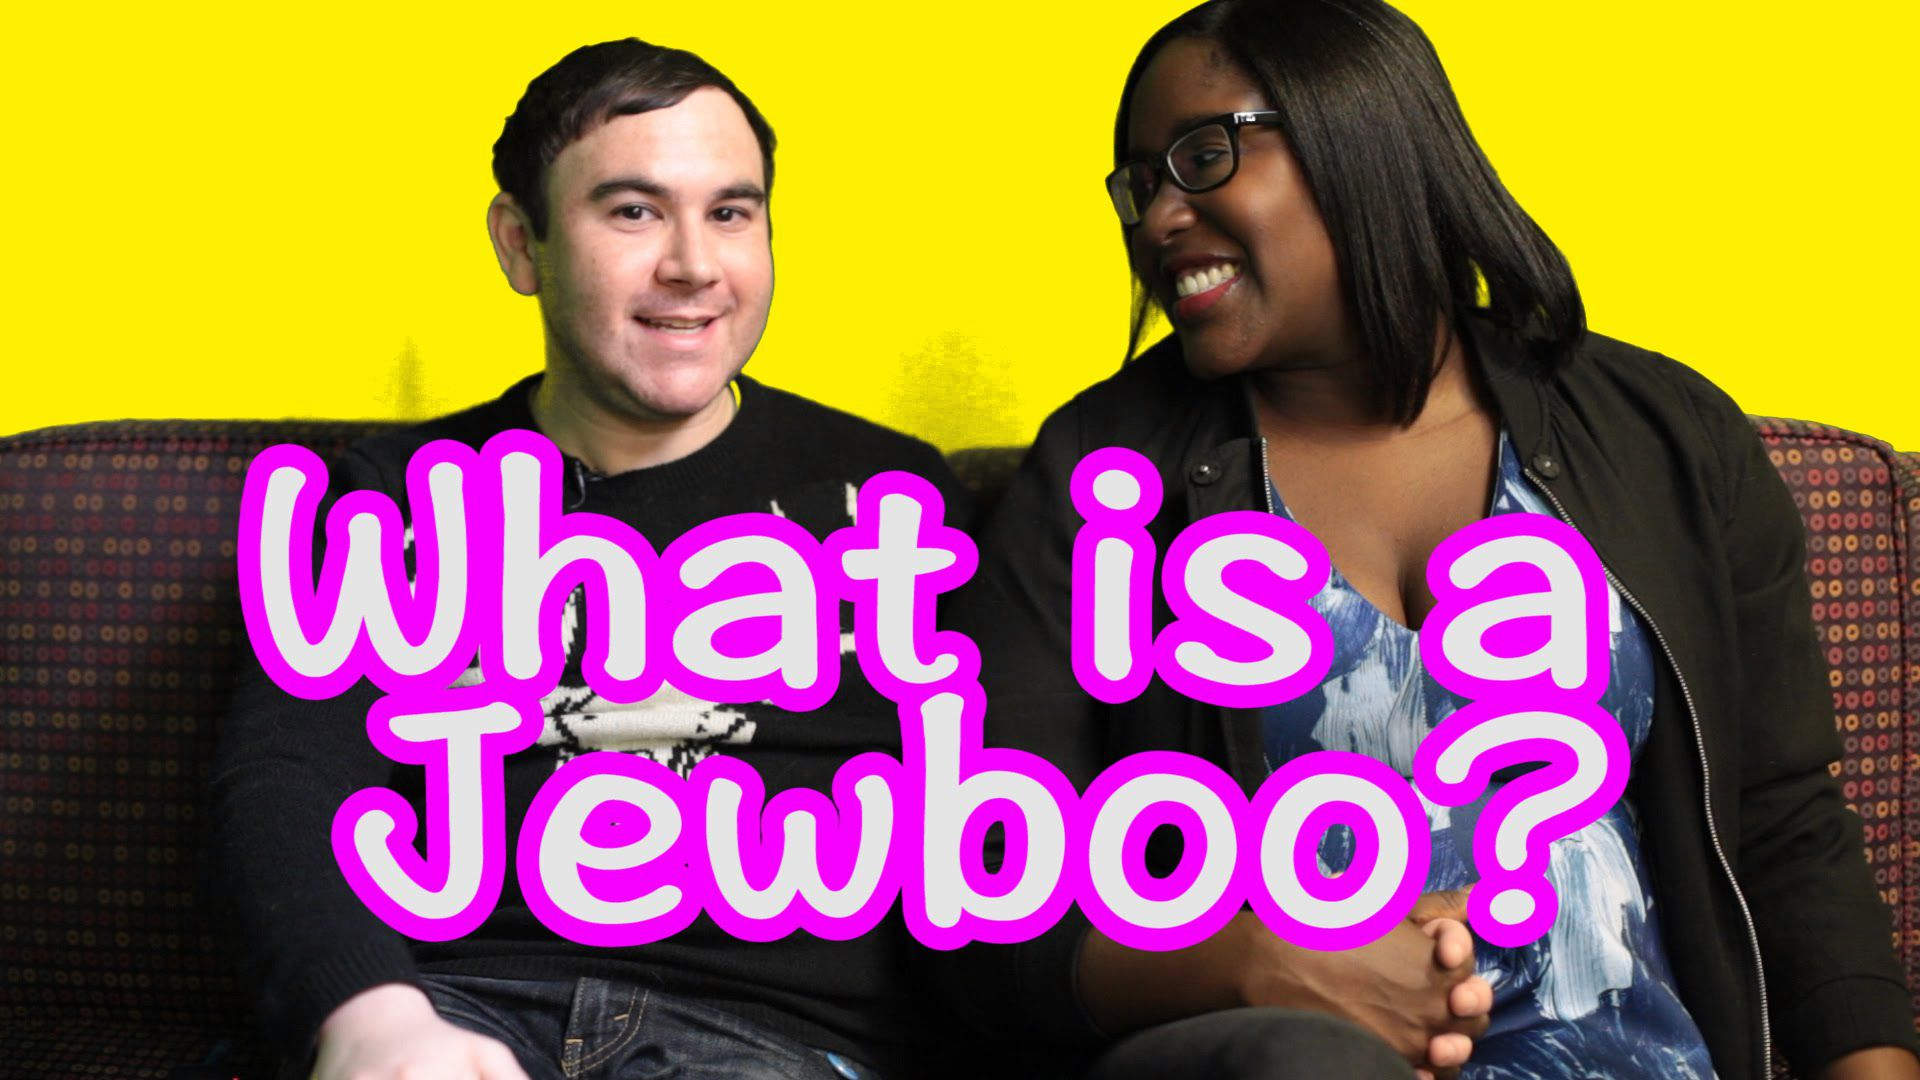 What is a Jewboo?